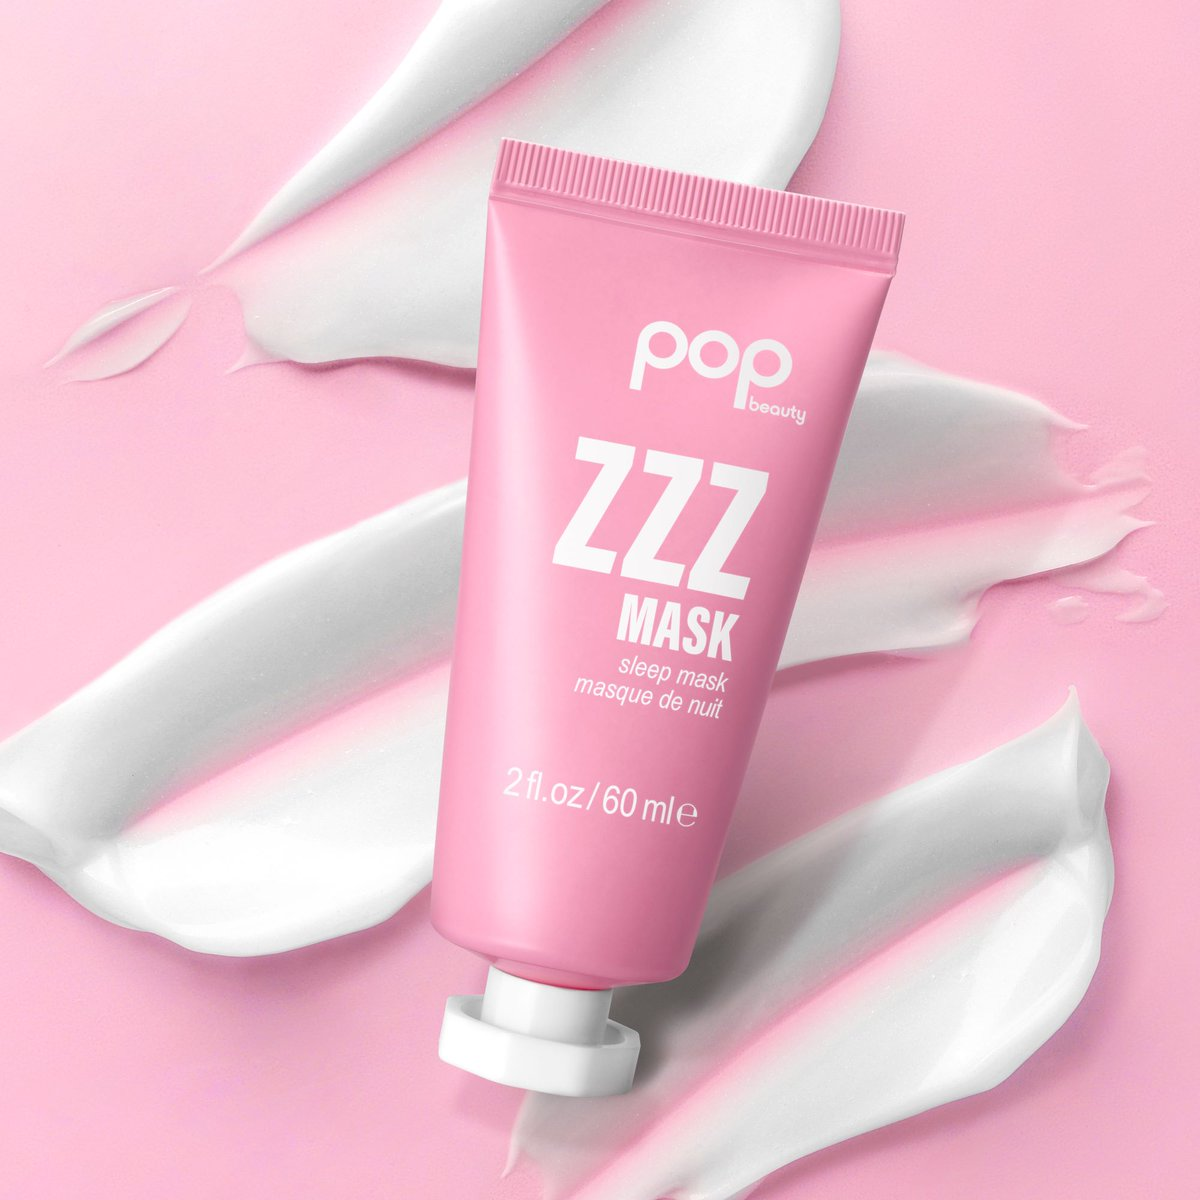 You might be running on zero sleep, but ZZZ Mask will have you looking like you got a full 8 hours and just woke up like this. 💜  #POPbeauty #ZZZMask https://t.co/6bU2XAXVj9